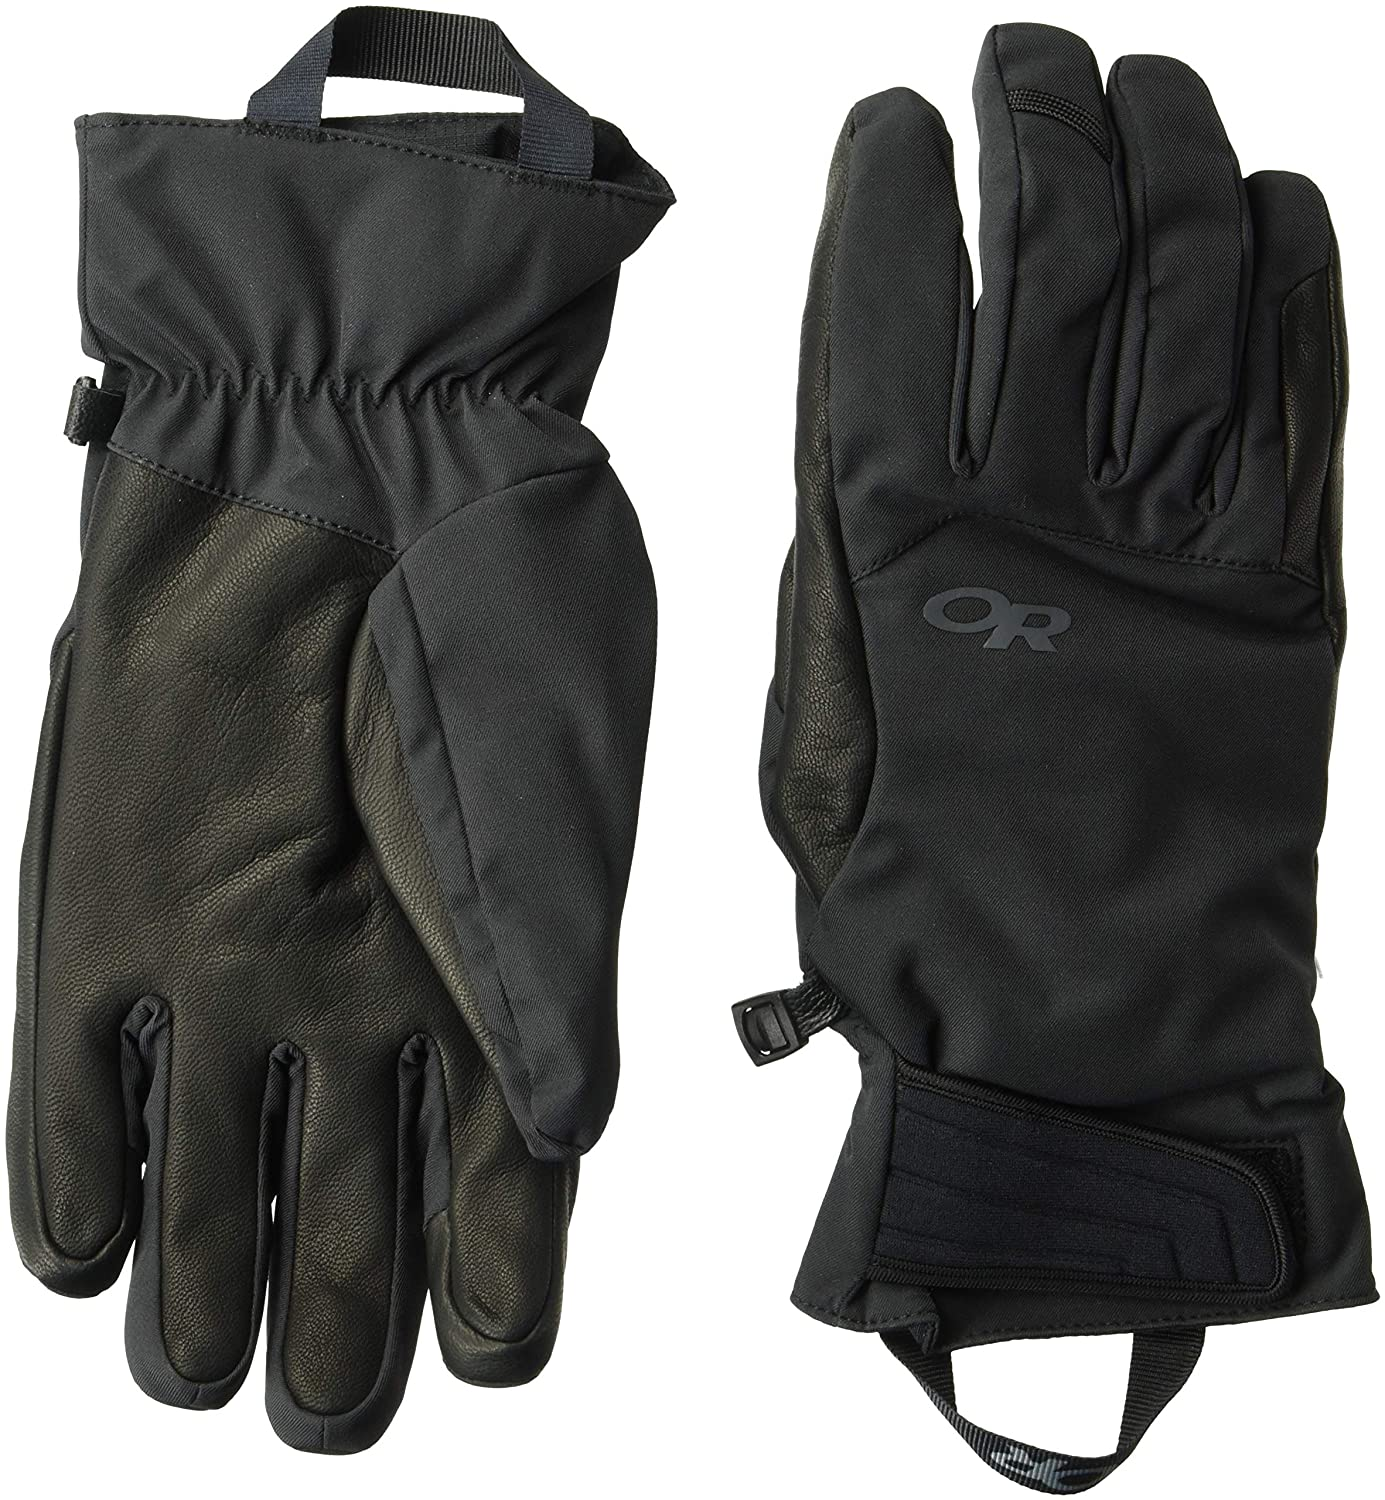 Outdoor Research Damen Handschuhe Direct Contact Gloves